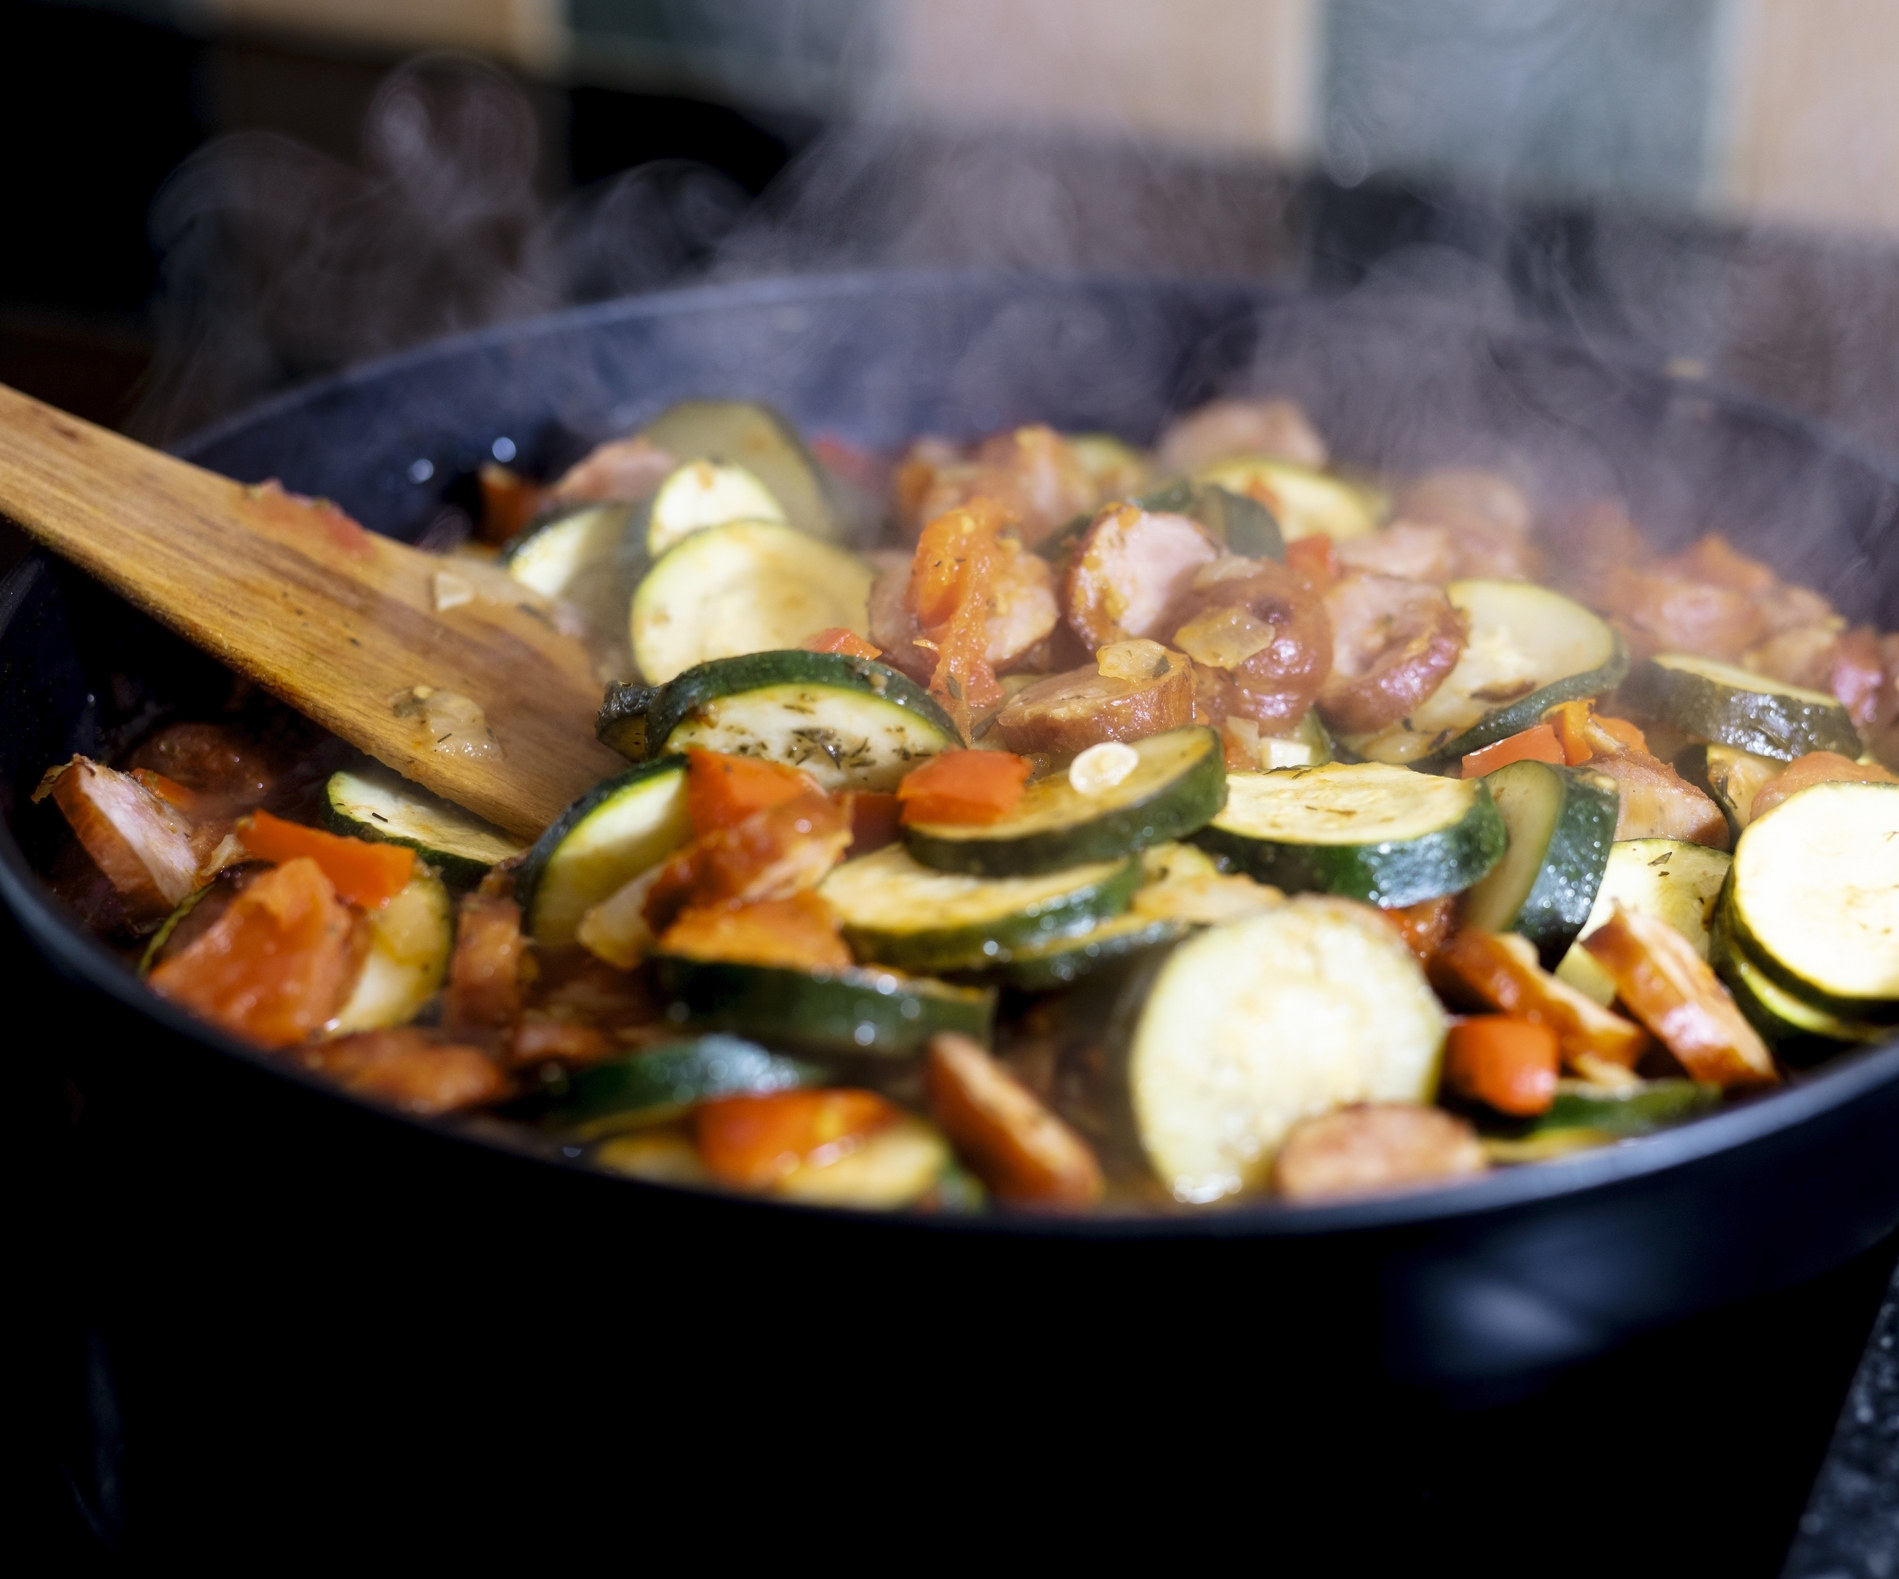 Sautéing sausage and vegetables with paprika